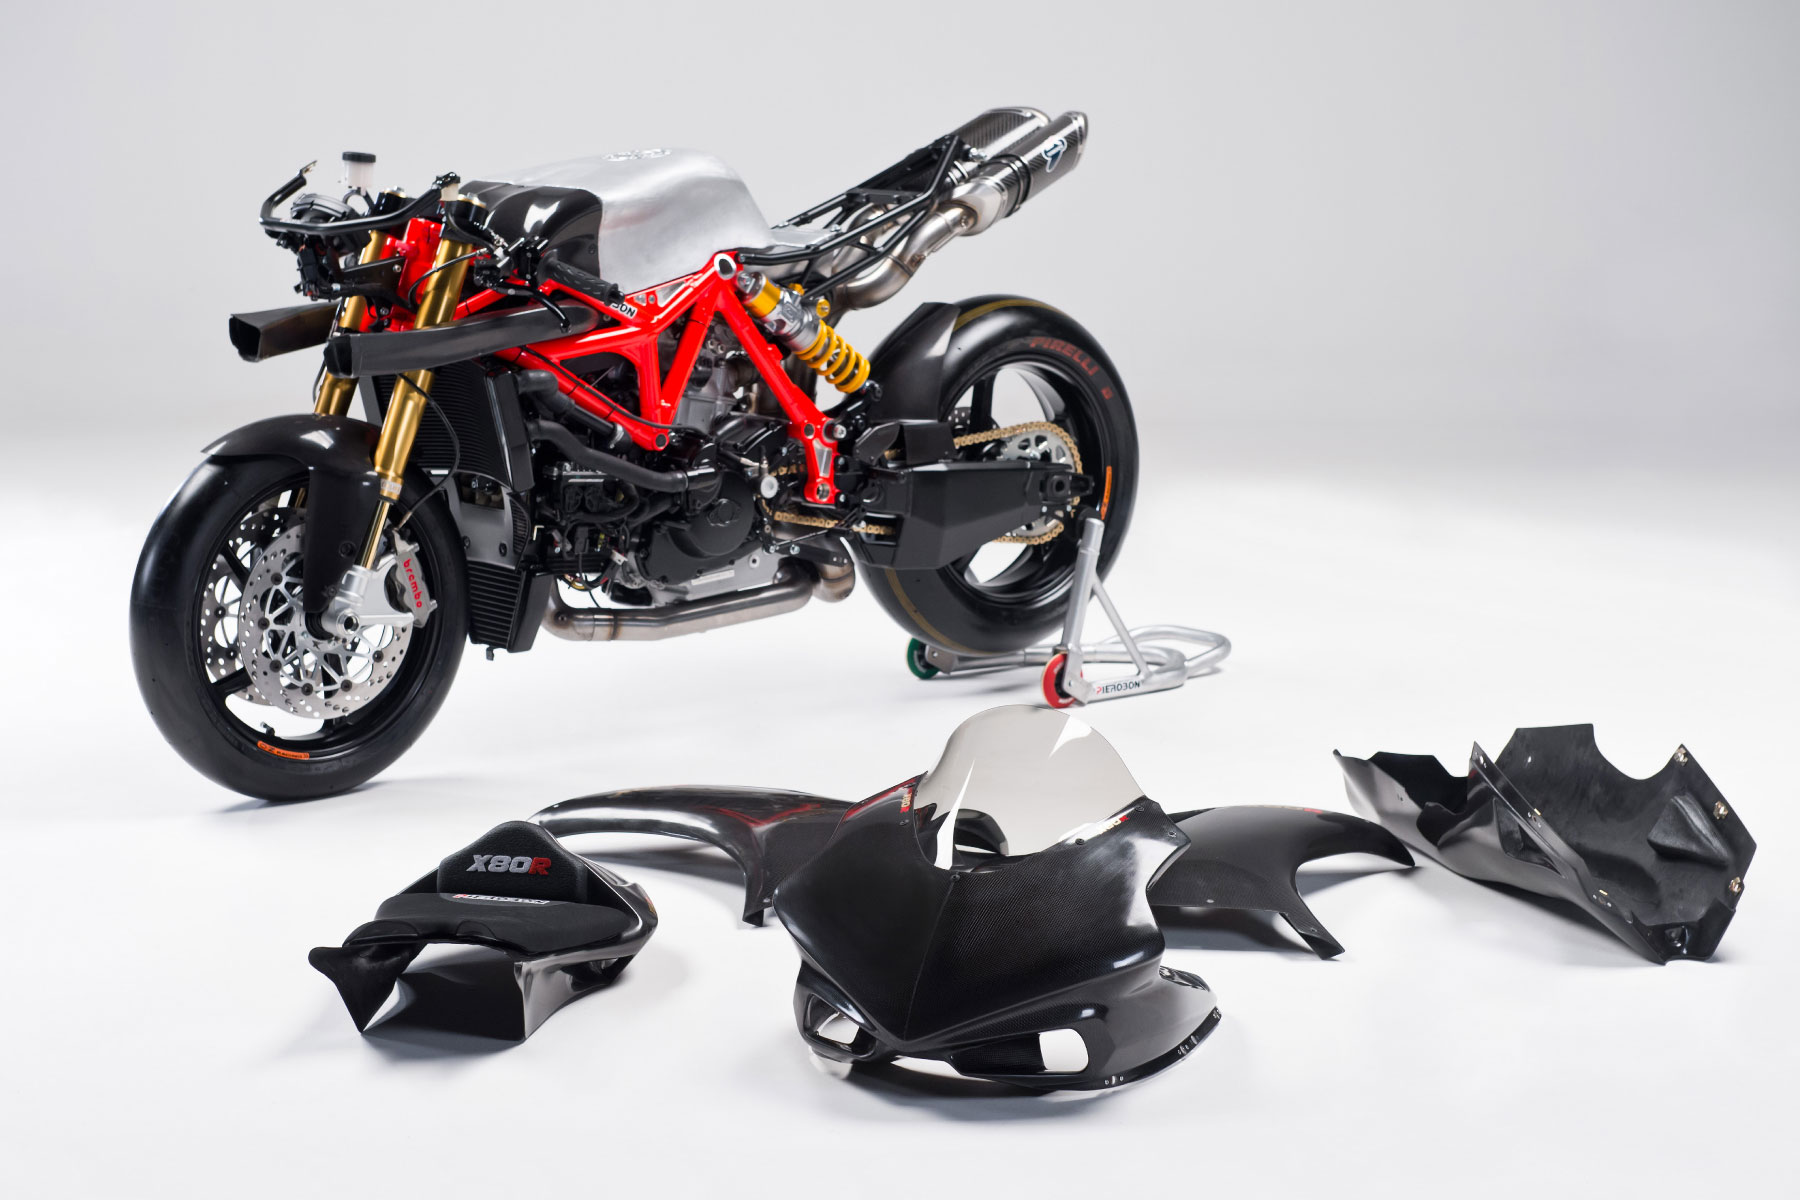 Pierobon X80R : Pierobon Frames - frames and accessories for motorcycle